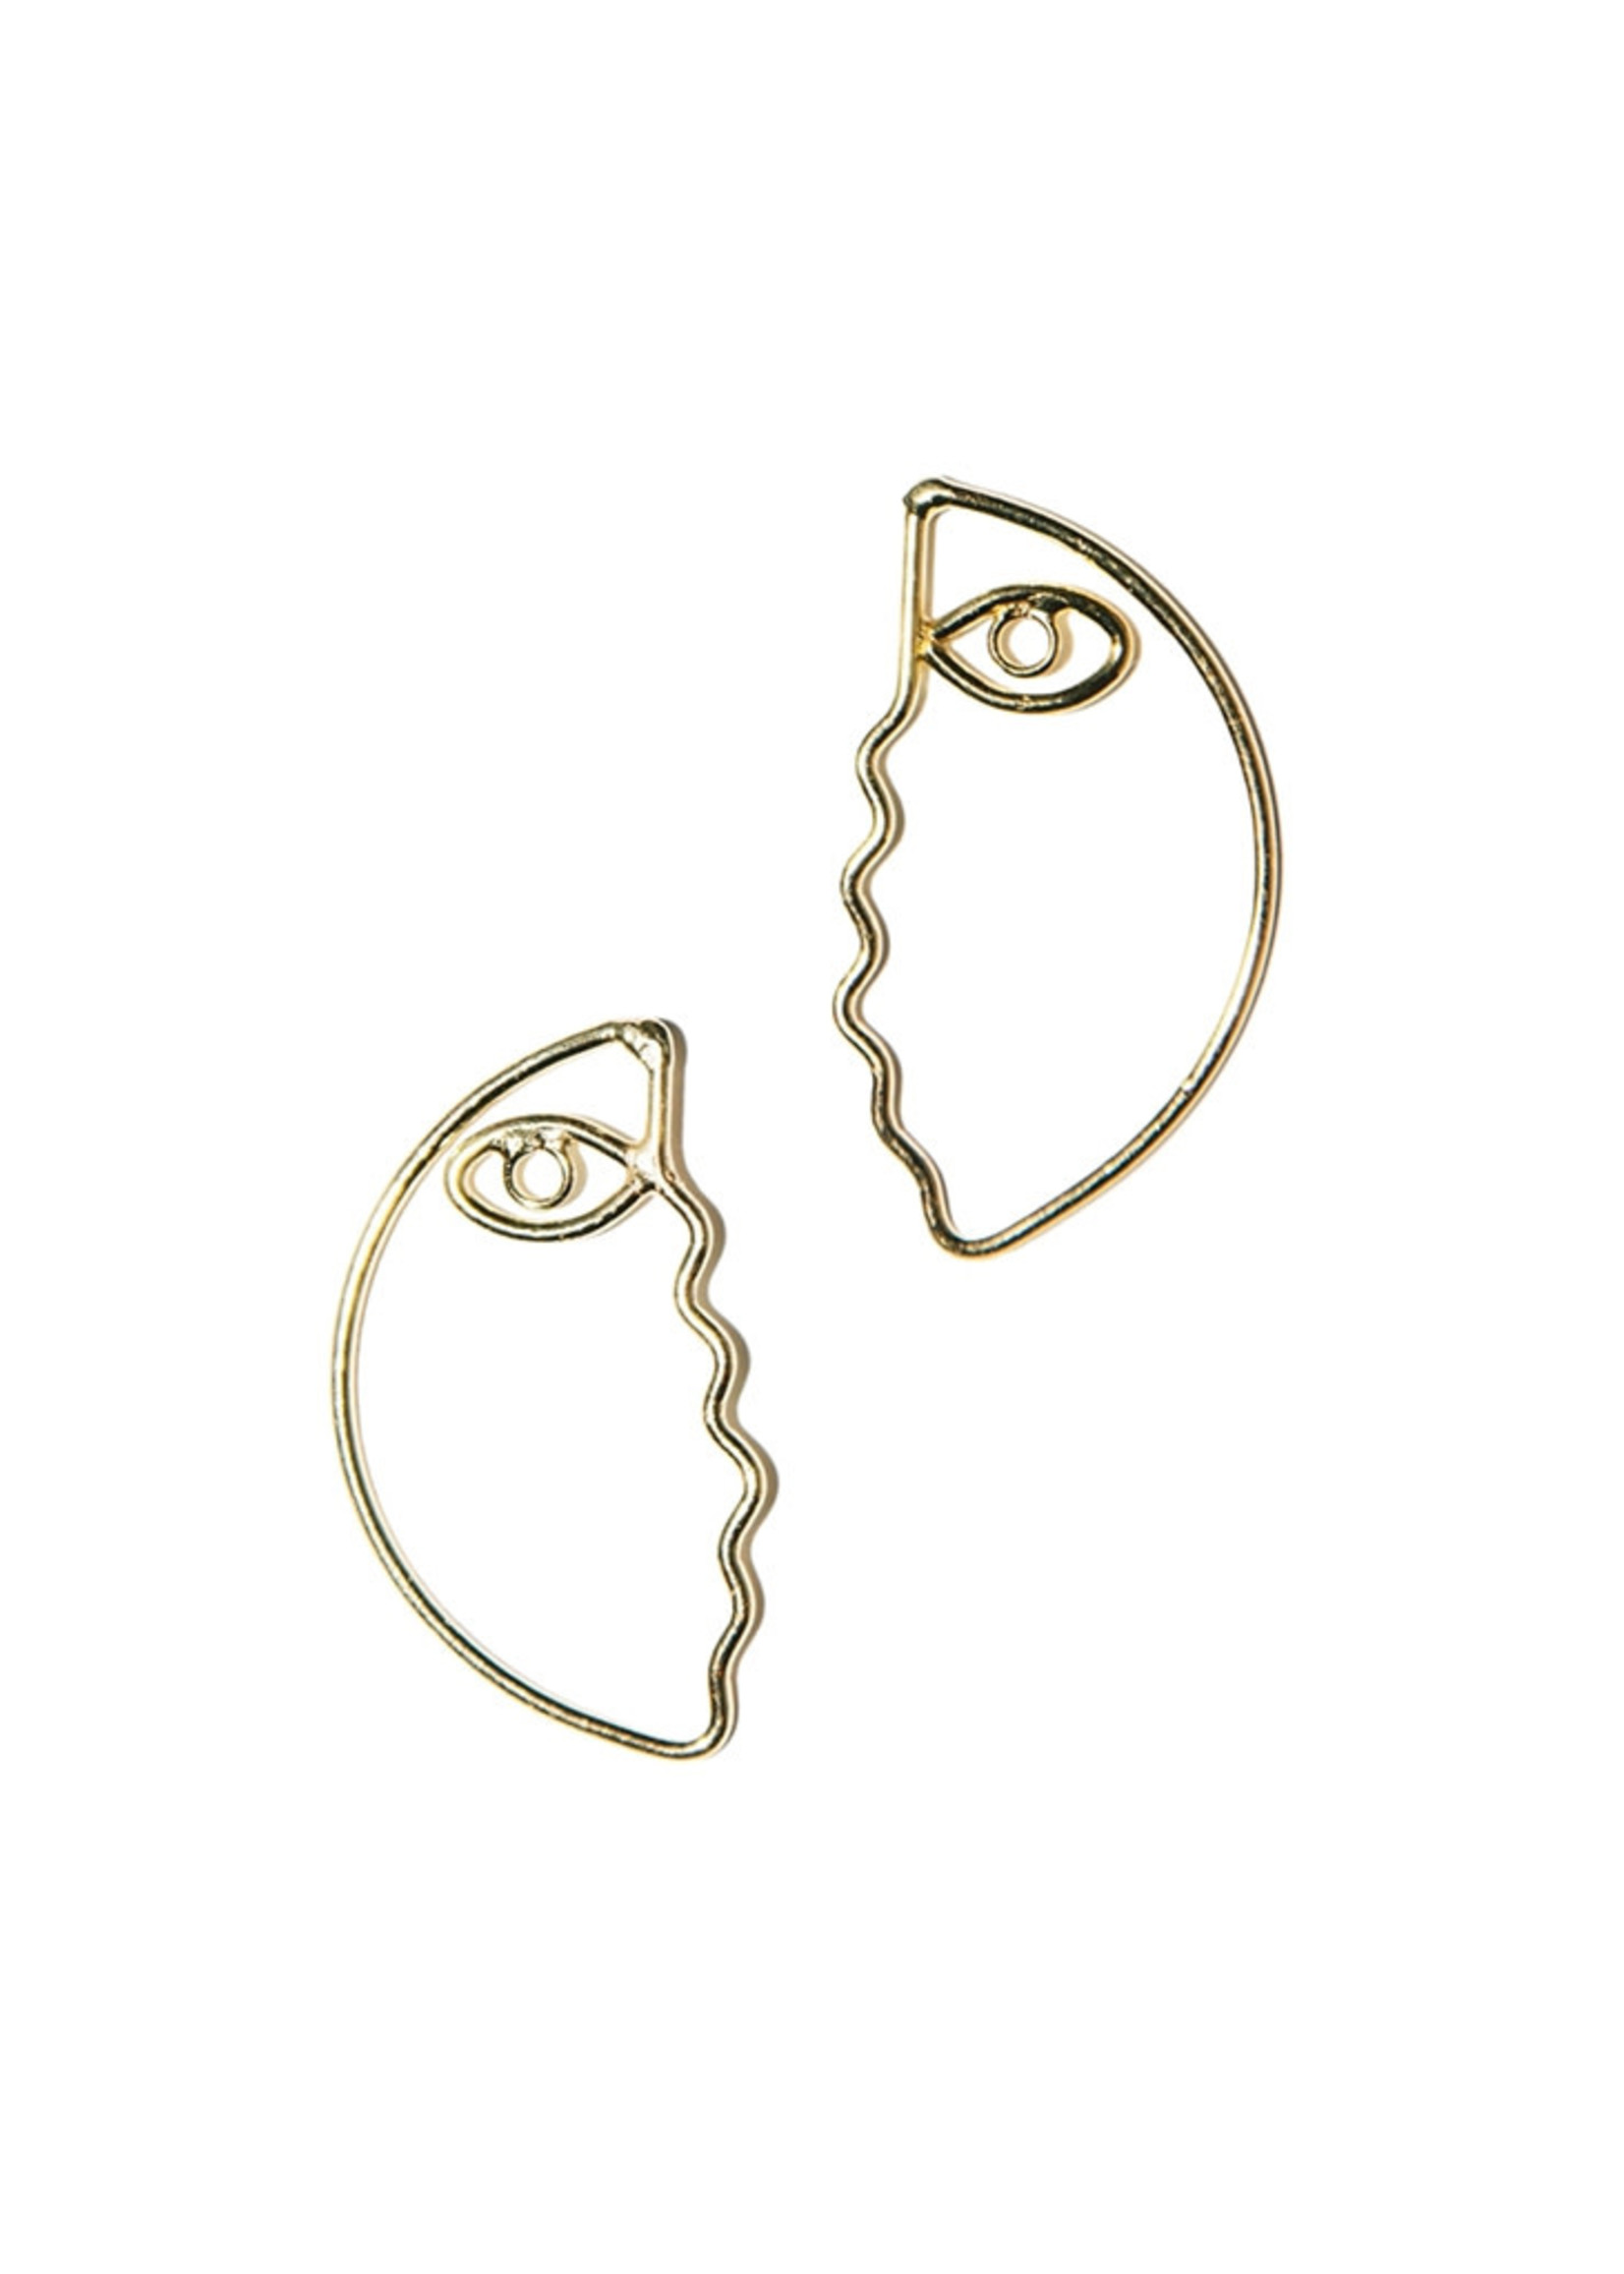 Abstract Face Outline Earrings